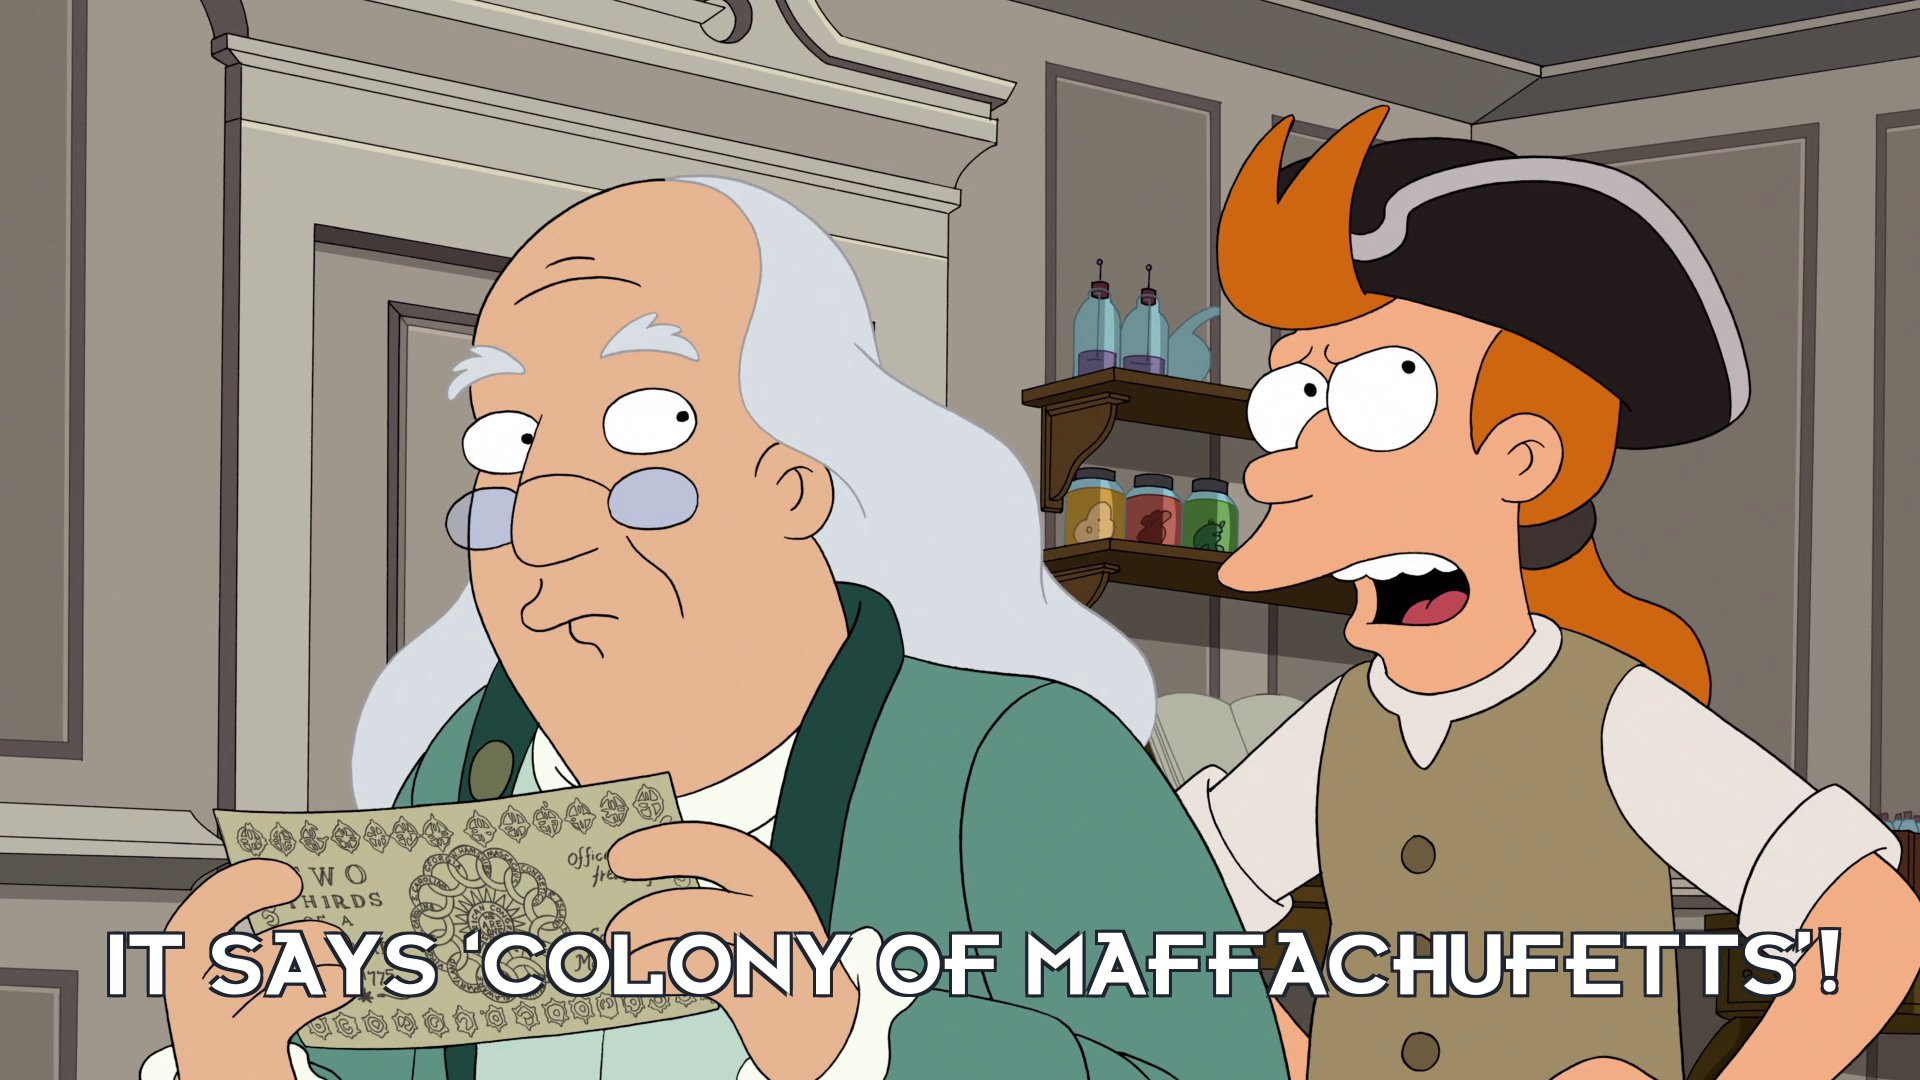 Philip J Fry: It says 'Colony of Maffachufetts'!